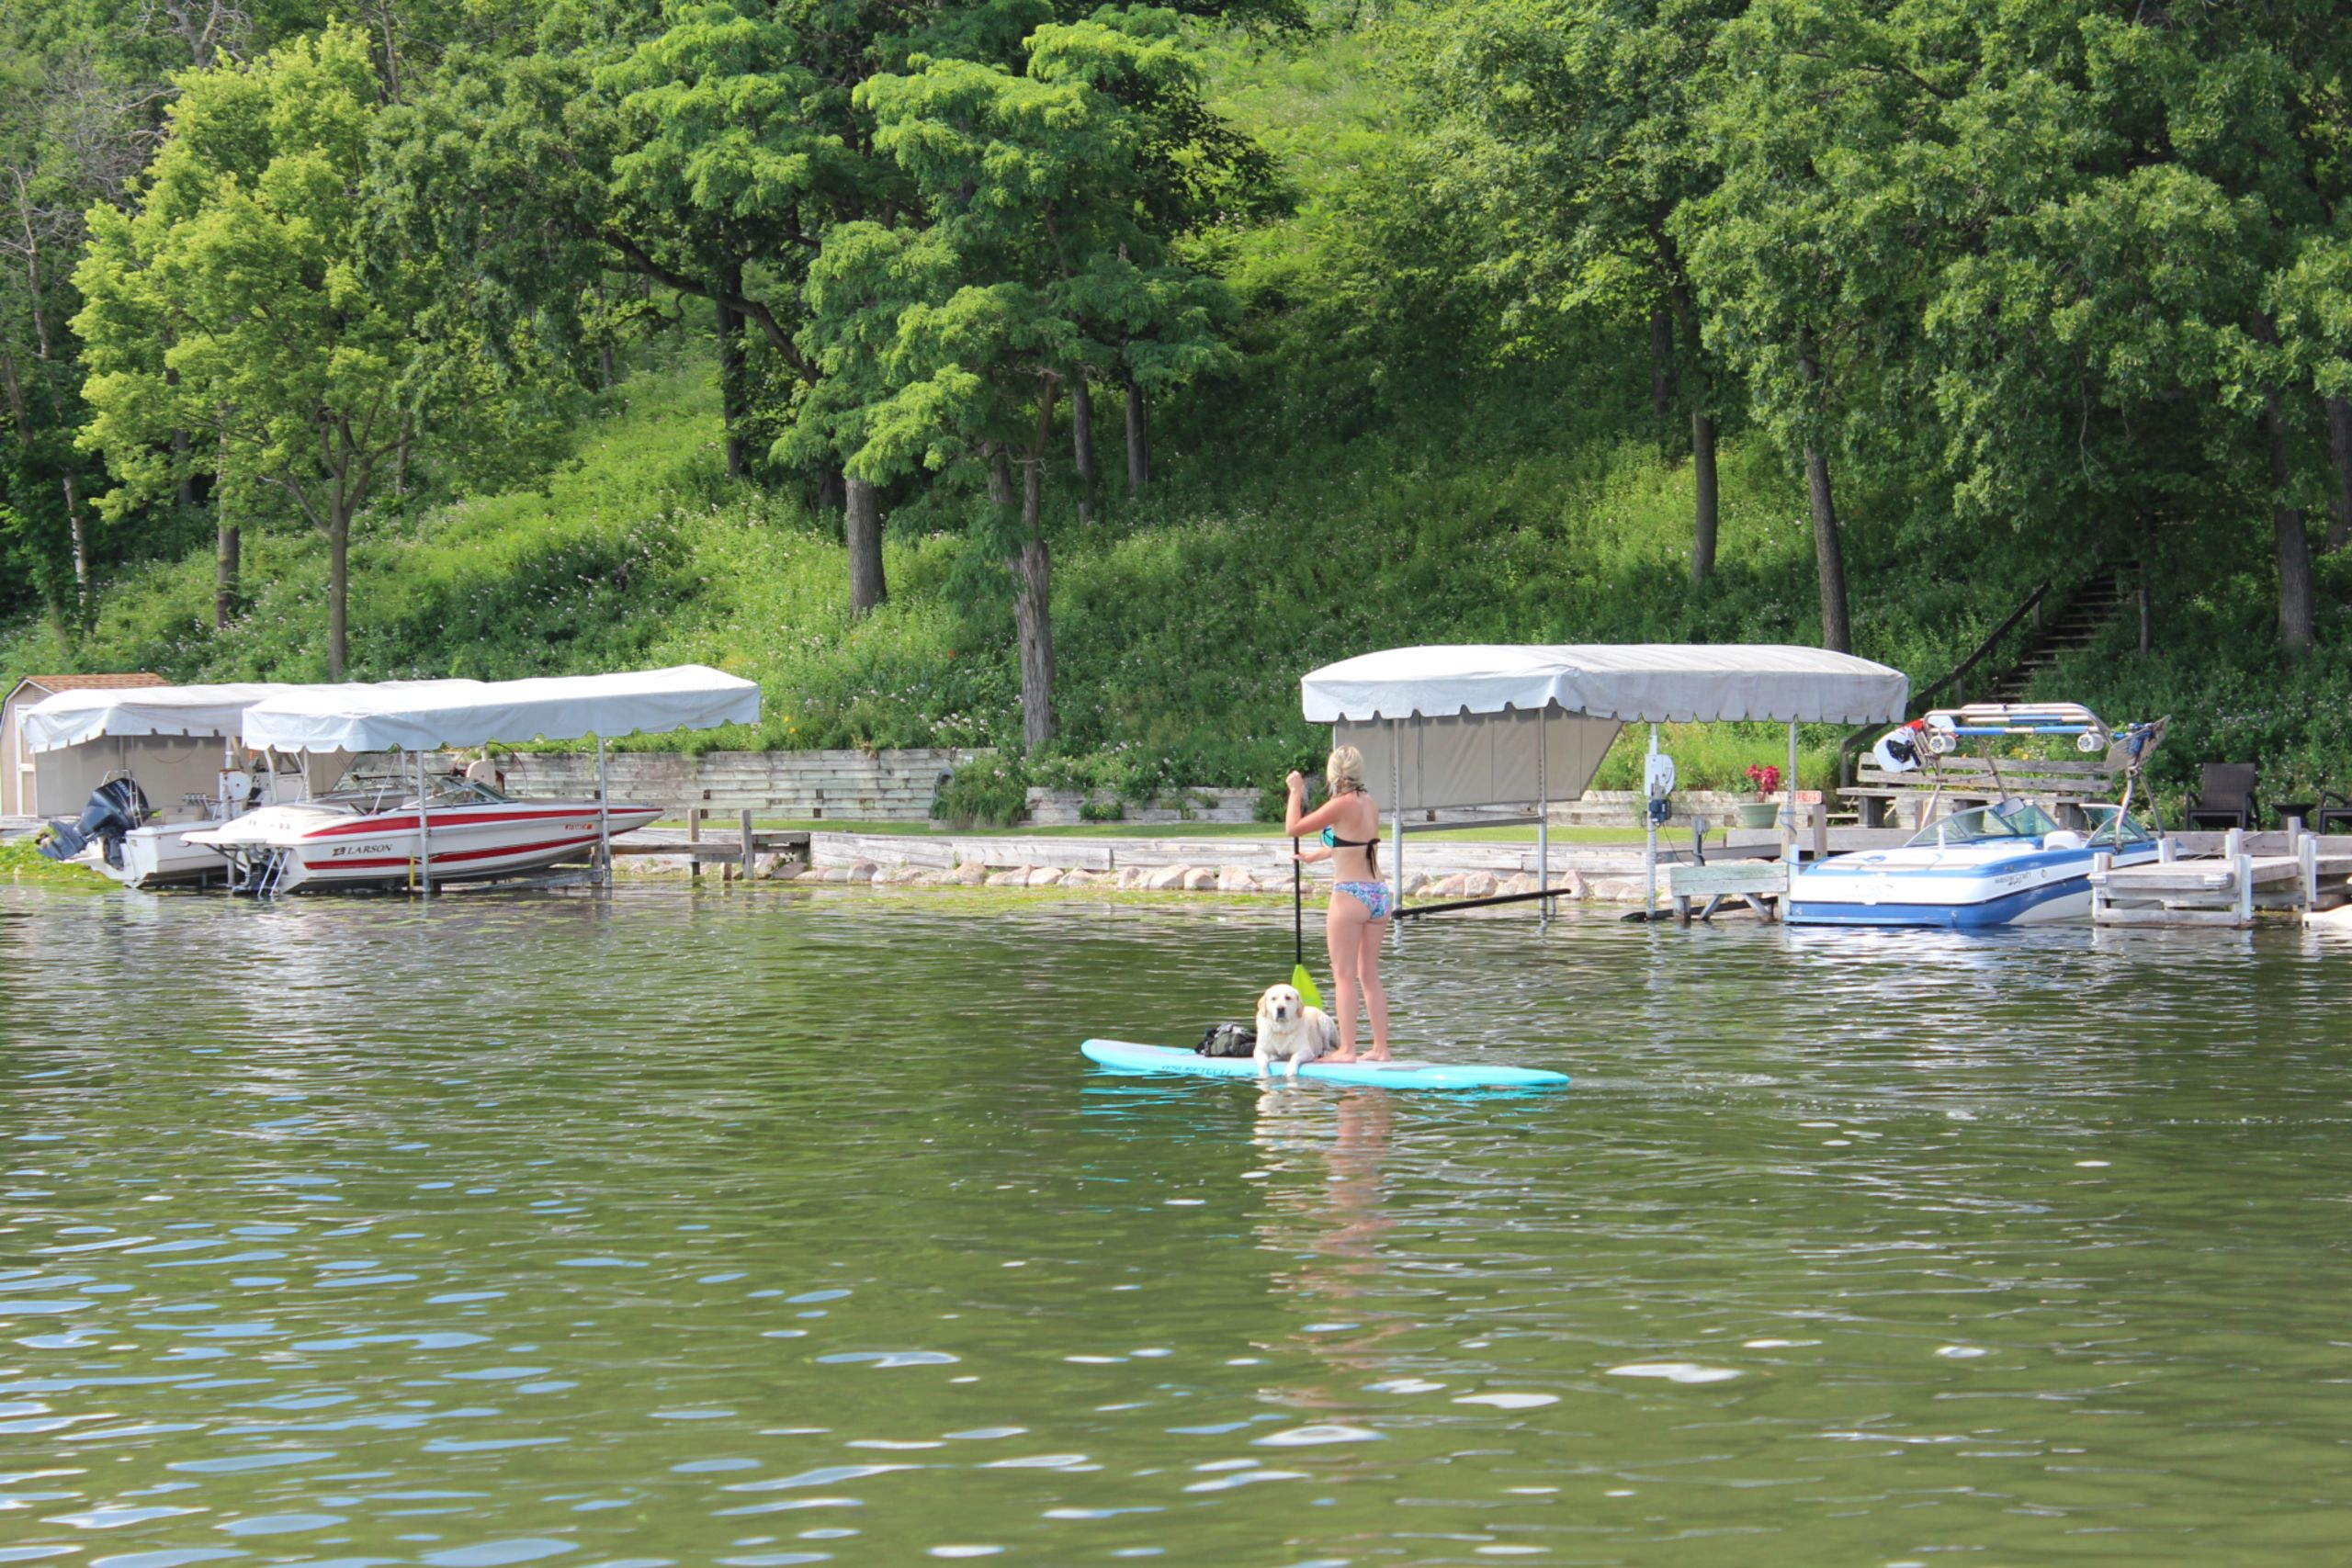 PADDLE BOARDING ON LAUDERDALE LAKE